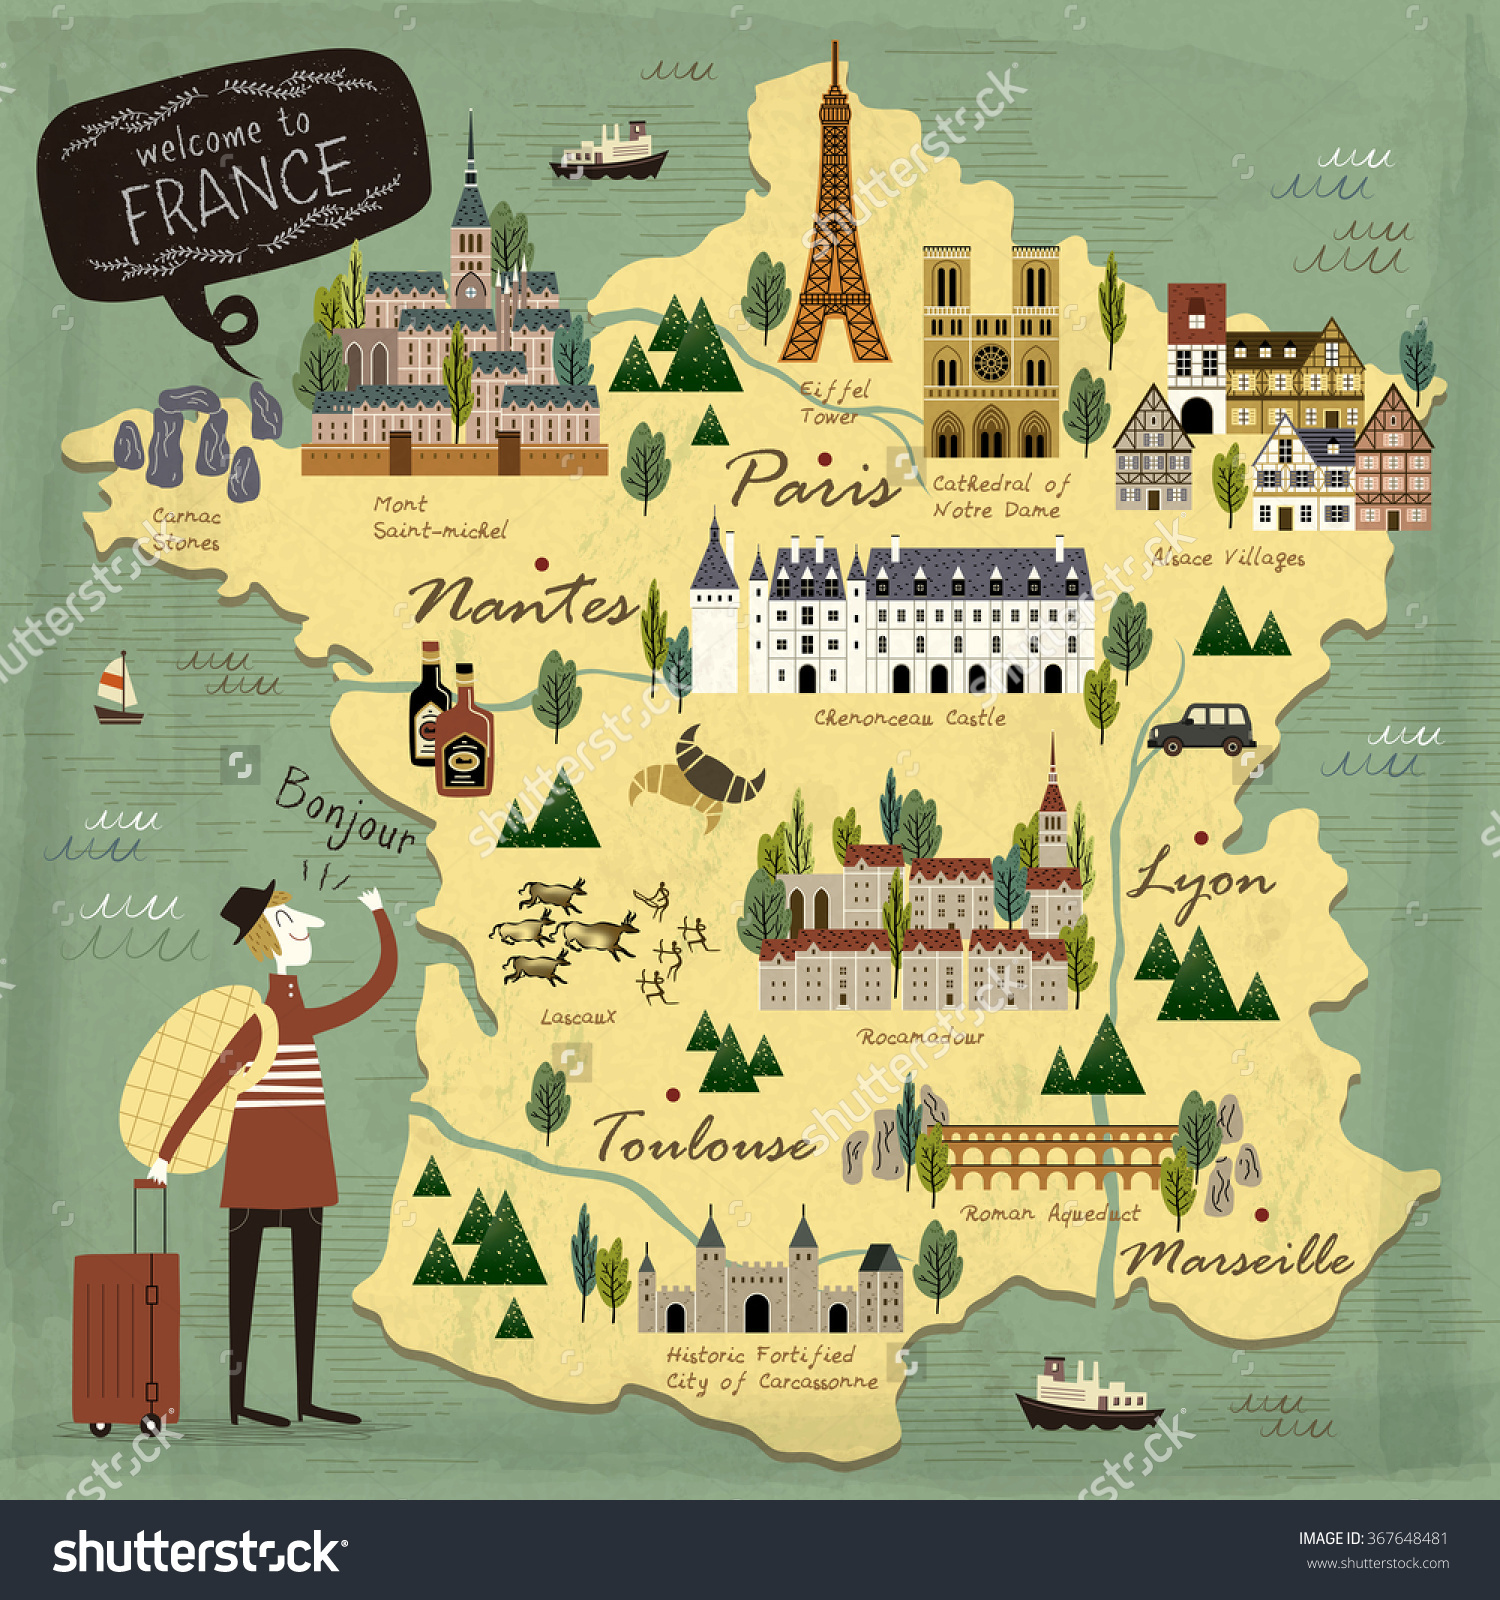 France Travel Concept Illustration Map Attractions Vector – France Tourist Attractions Map